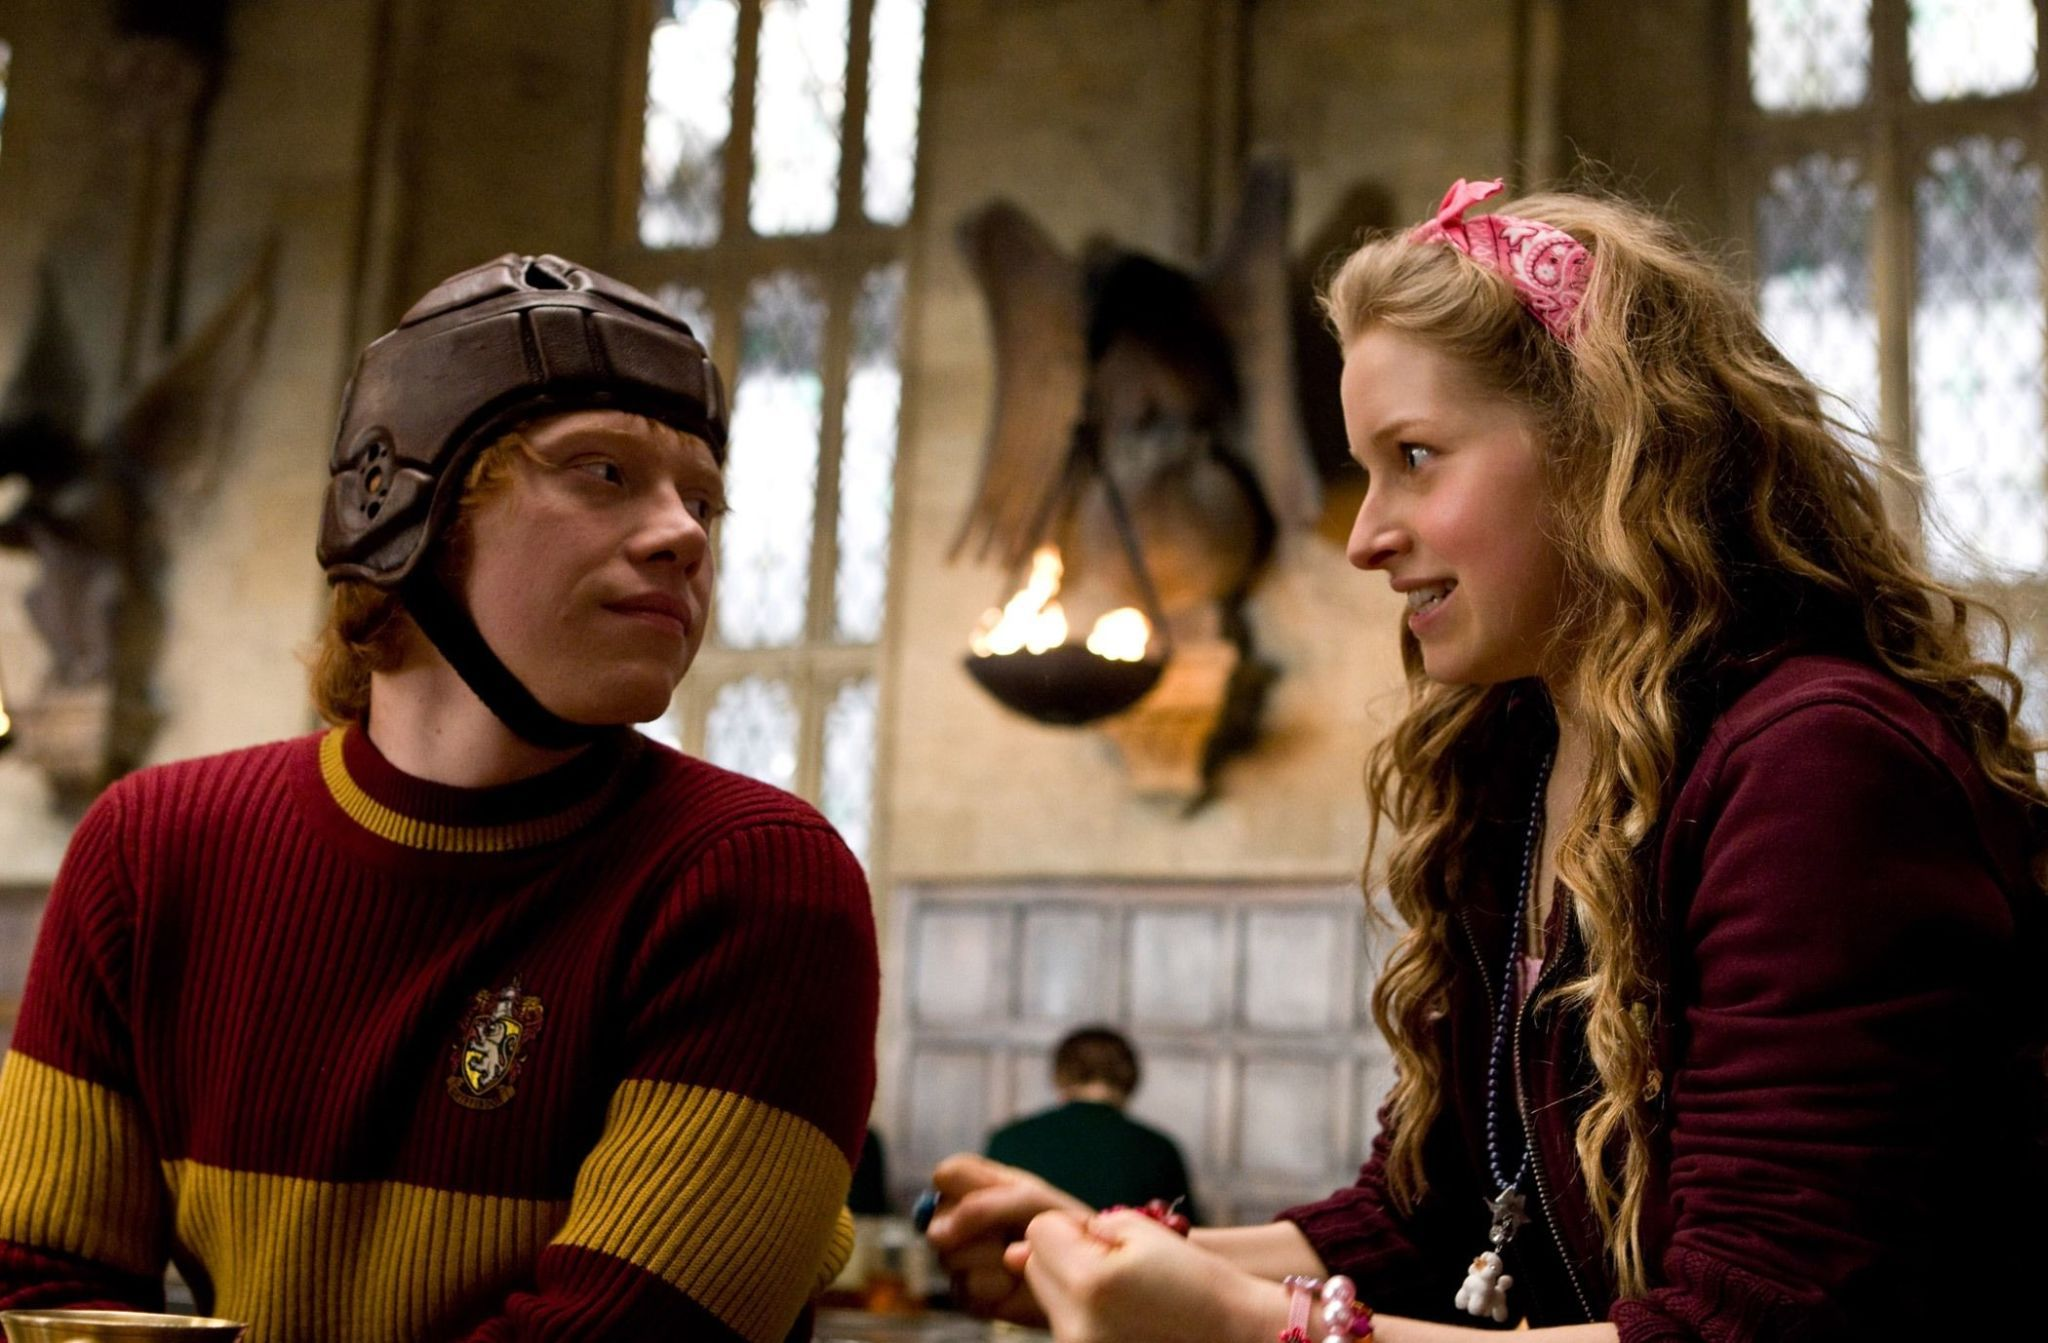 When does ron start dating lavender